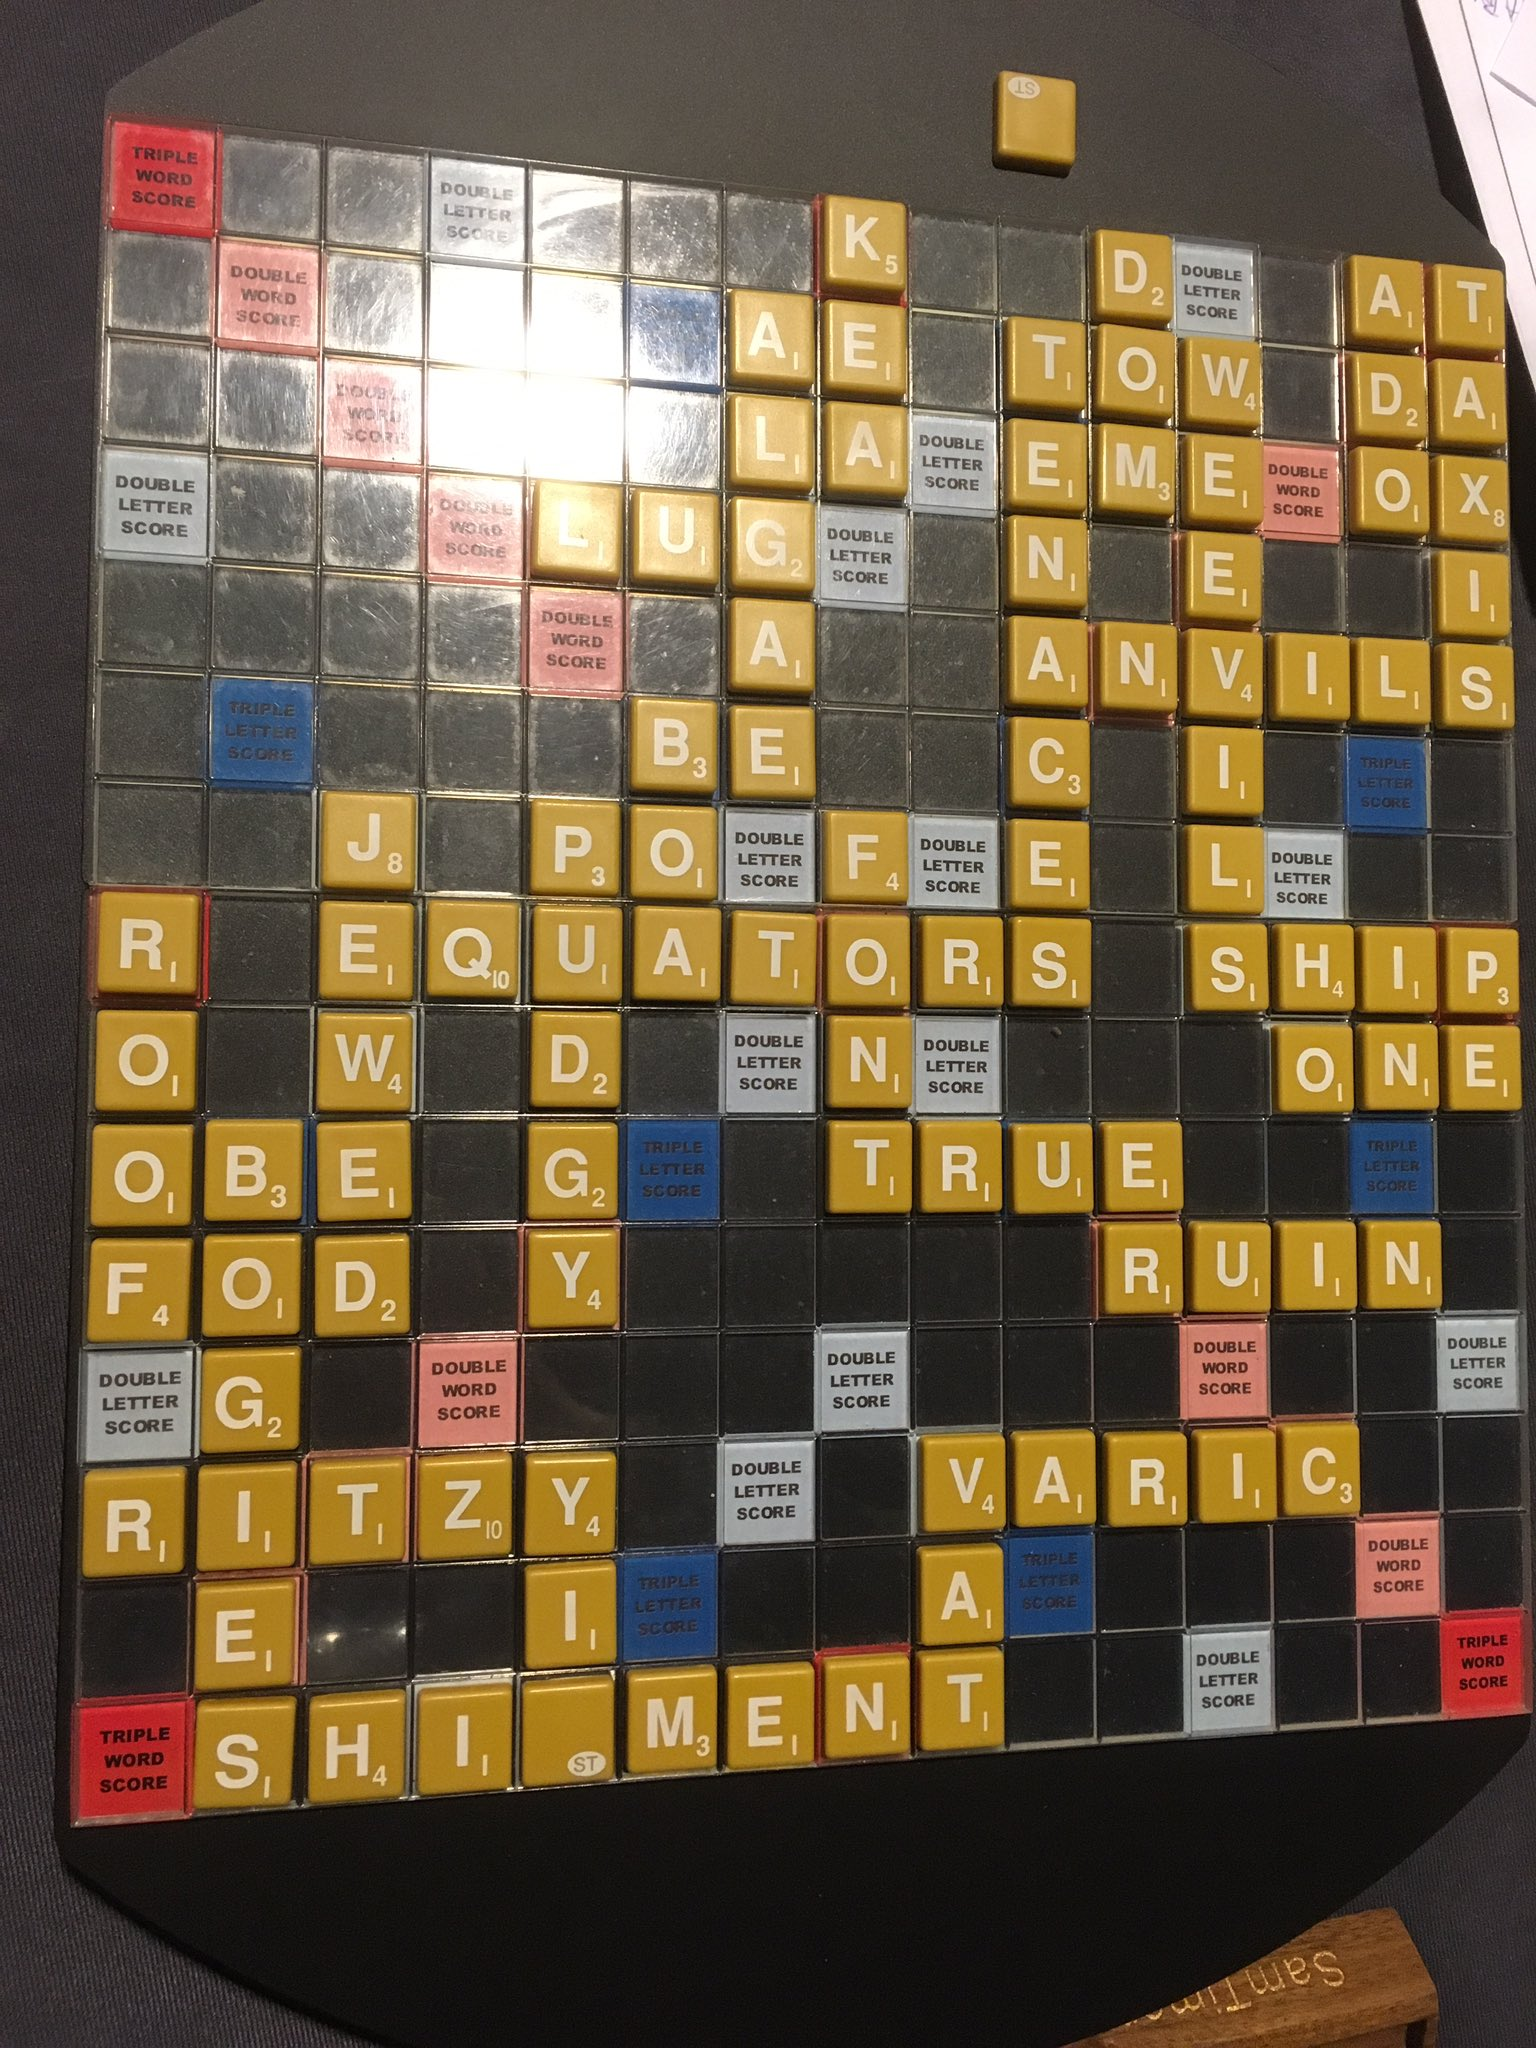 This was a particularly good game, even though I lost... #nasc2017 #scrabble https://t.co/iIZztGaoed